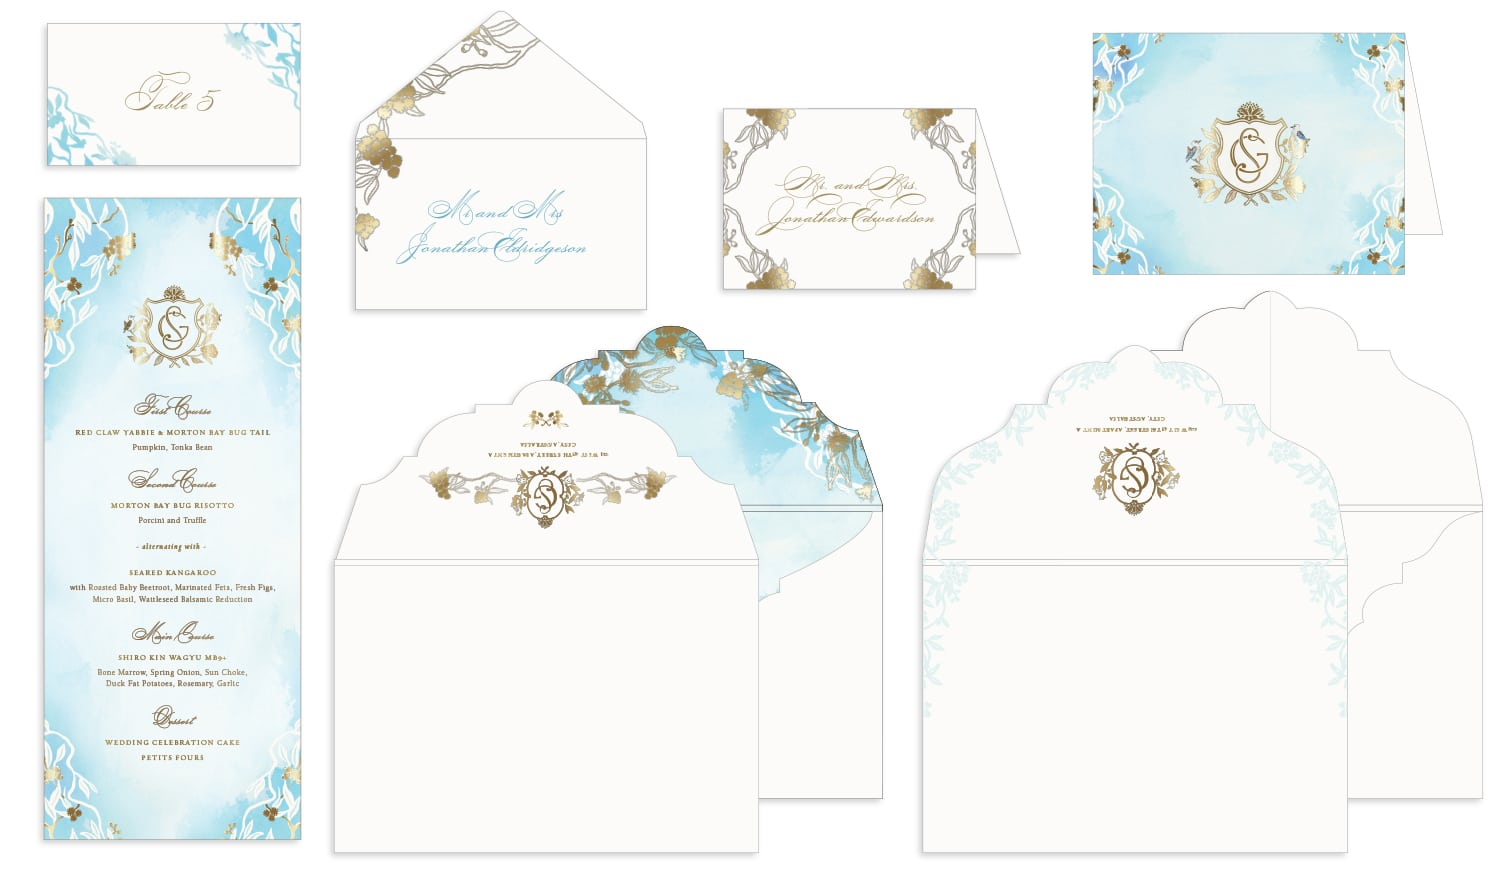 Watercolor and foil menu, place card, thank you card and envelopes